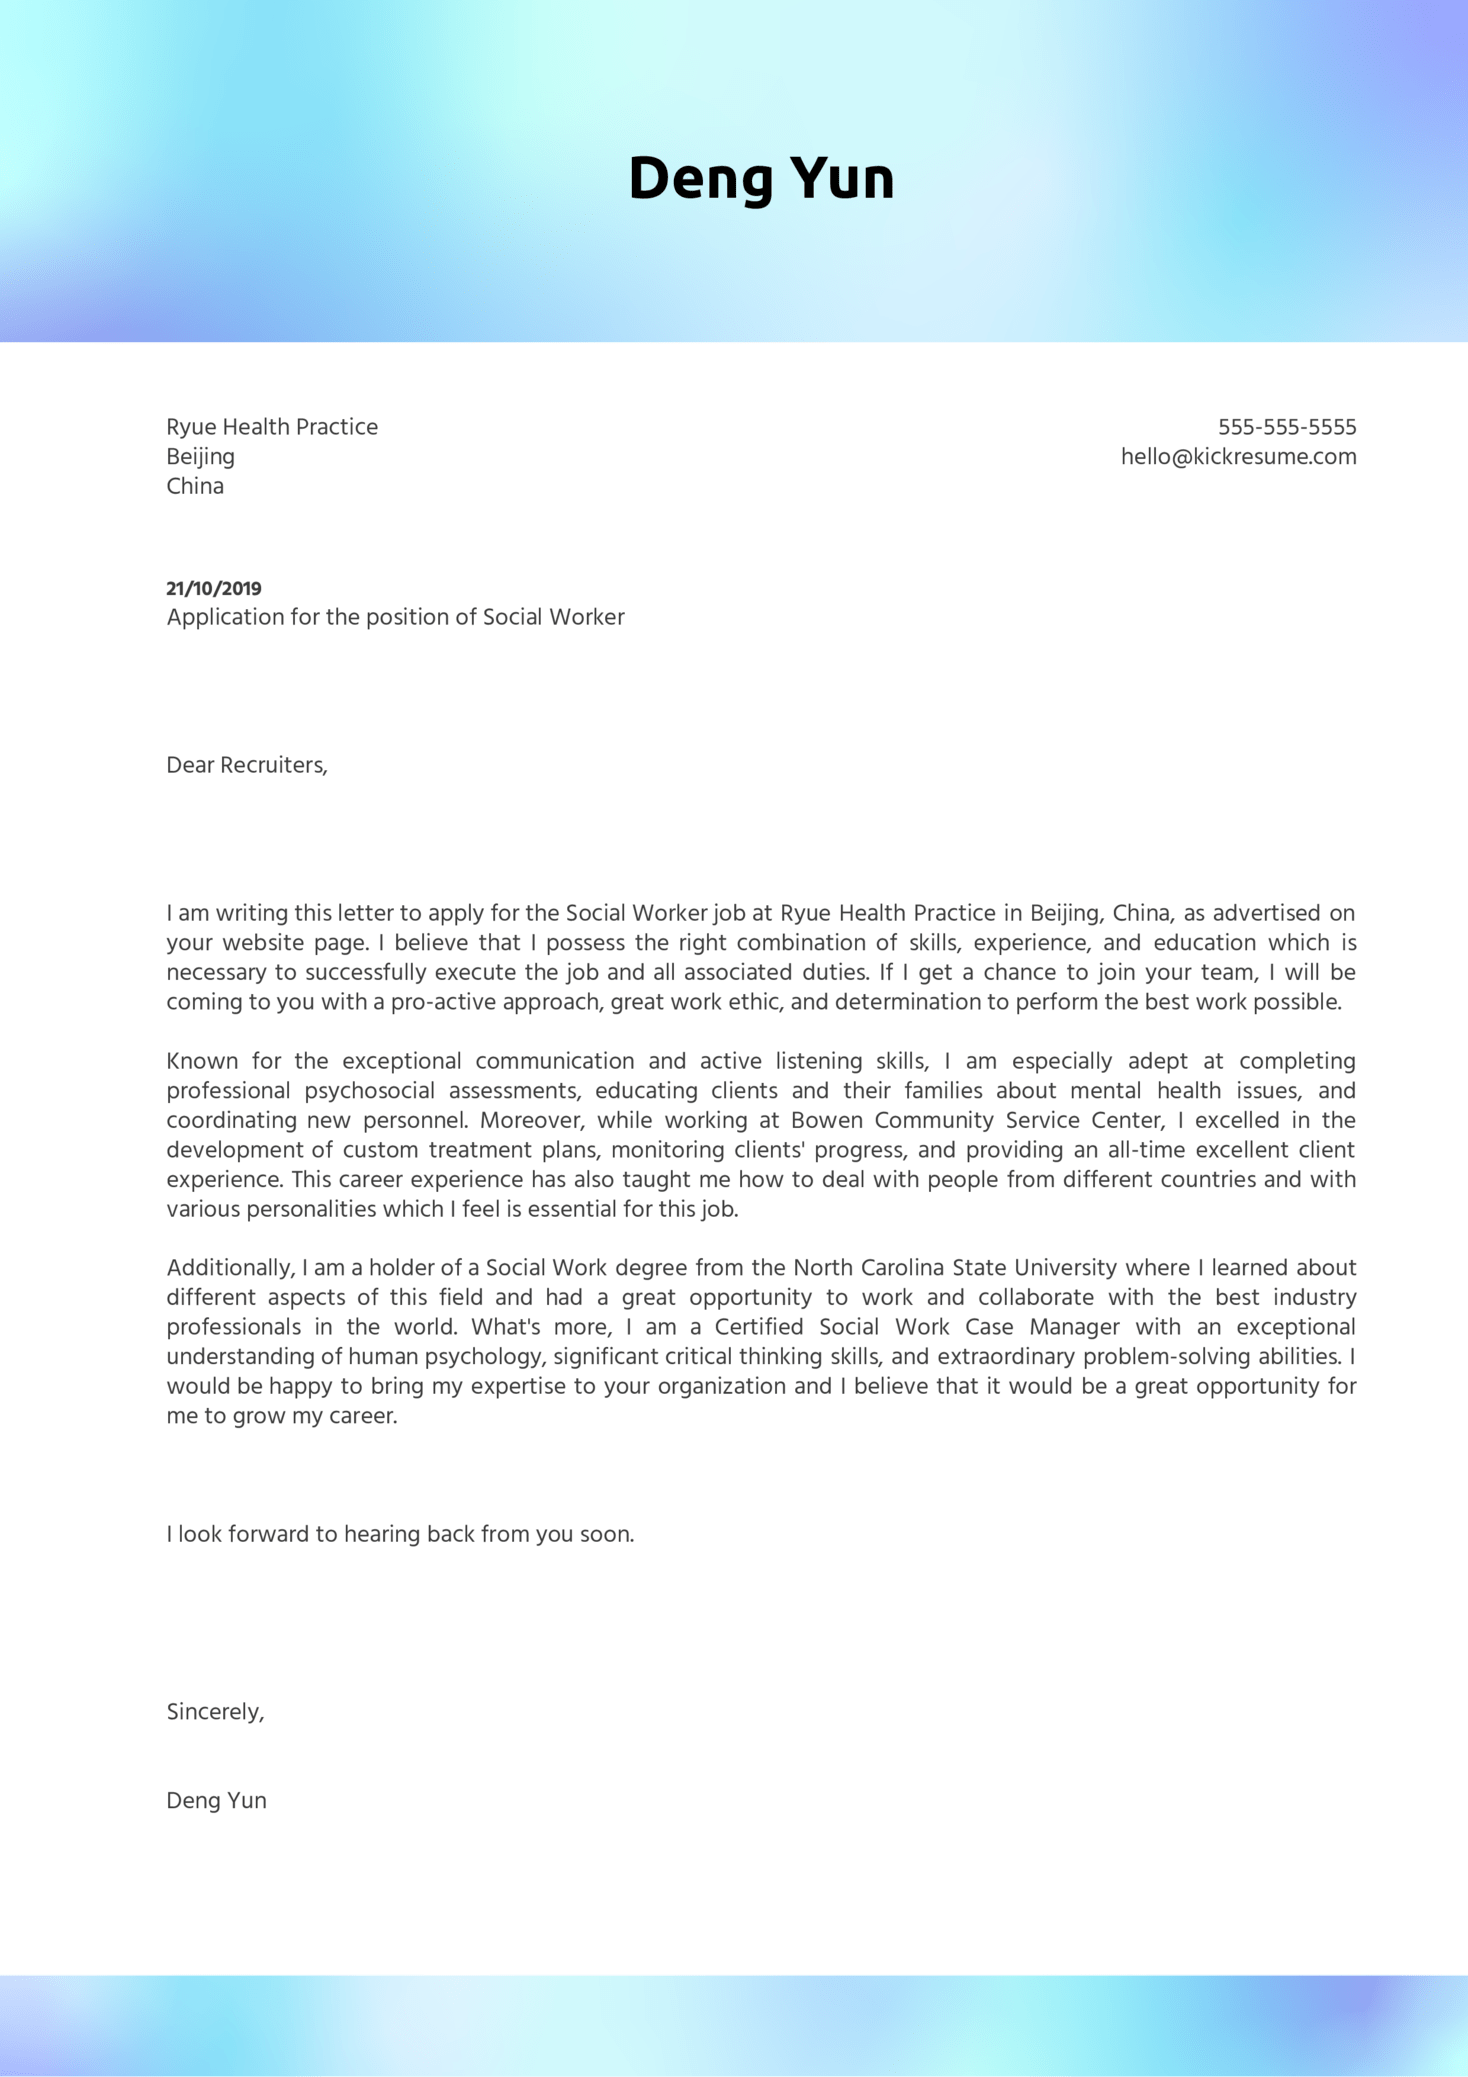 Social Work Cover Letter For Resume from s3-eu-west-1.amazonaws.com